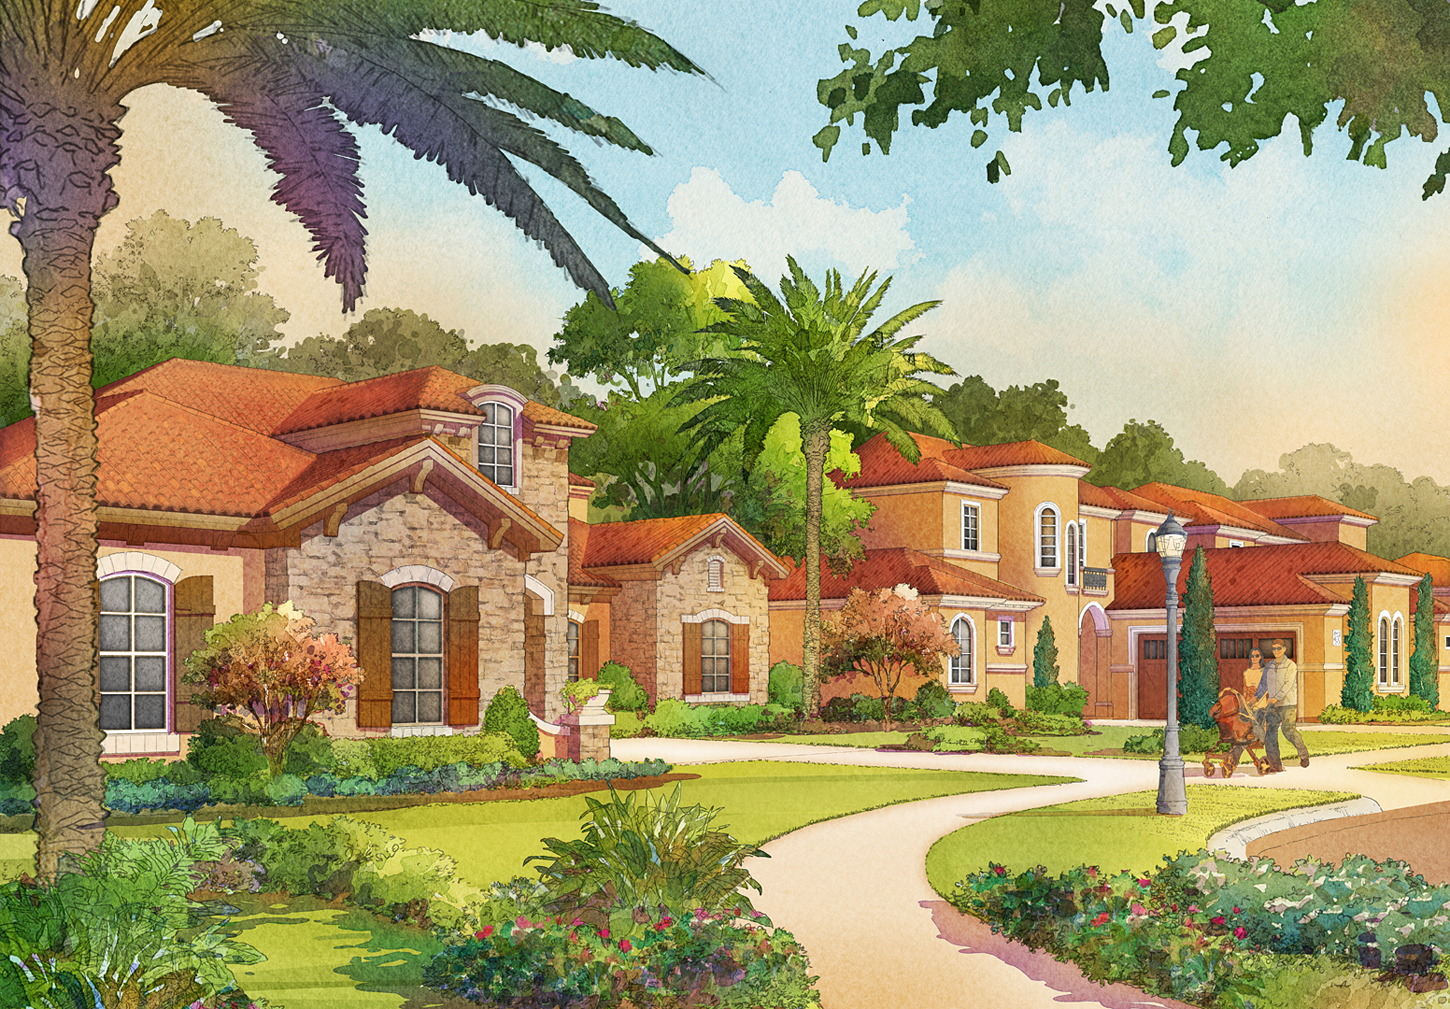 Digital Watercolor Architectural Rendering of Tamaya Sidewalk for Ervin Lovett Miller